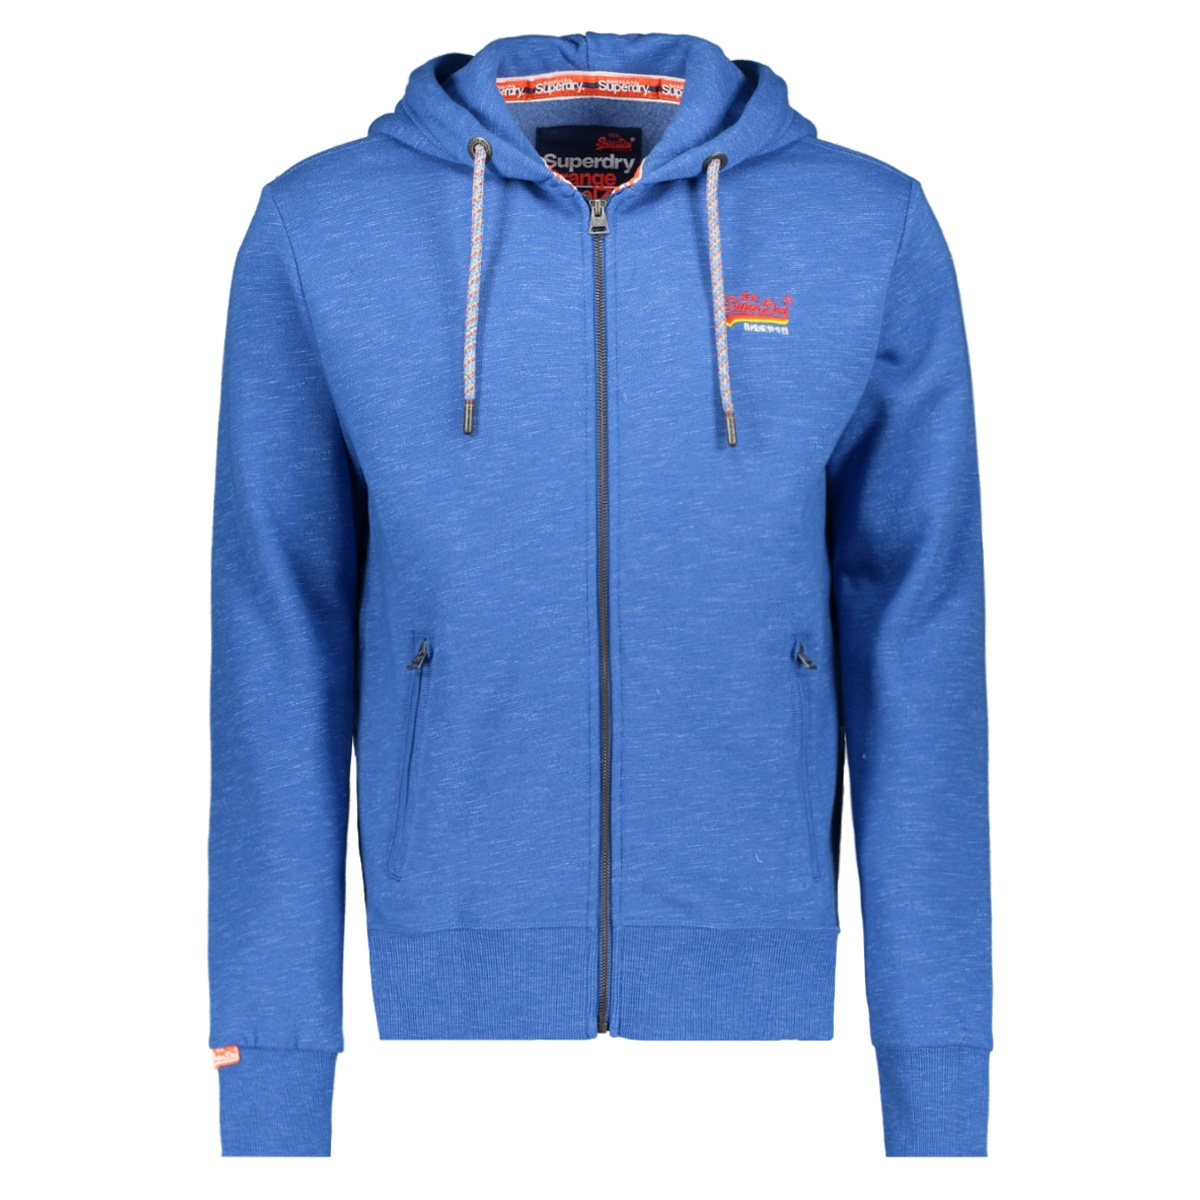 m20102at cali ziphood superdry vest royal blue feeder